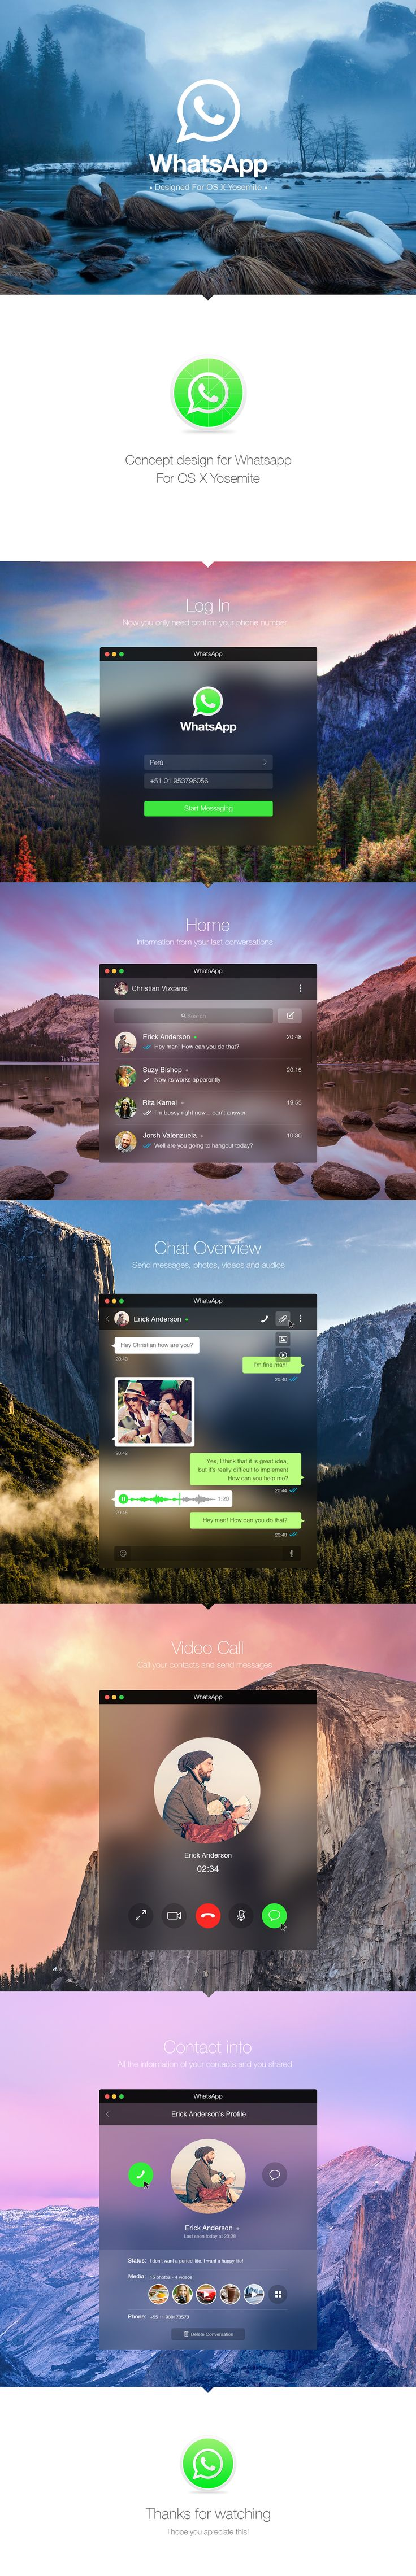 WhatsApp for OS X Yosemite - App design concept on Behance